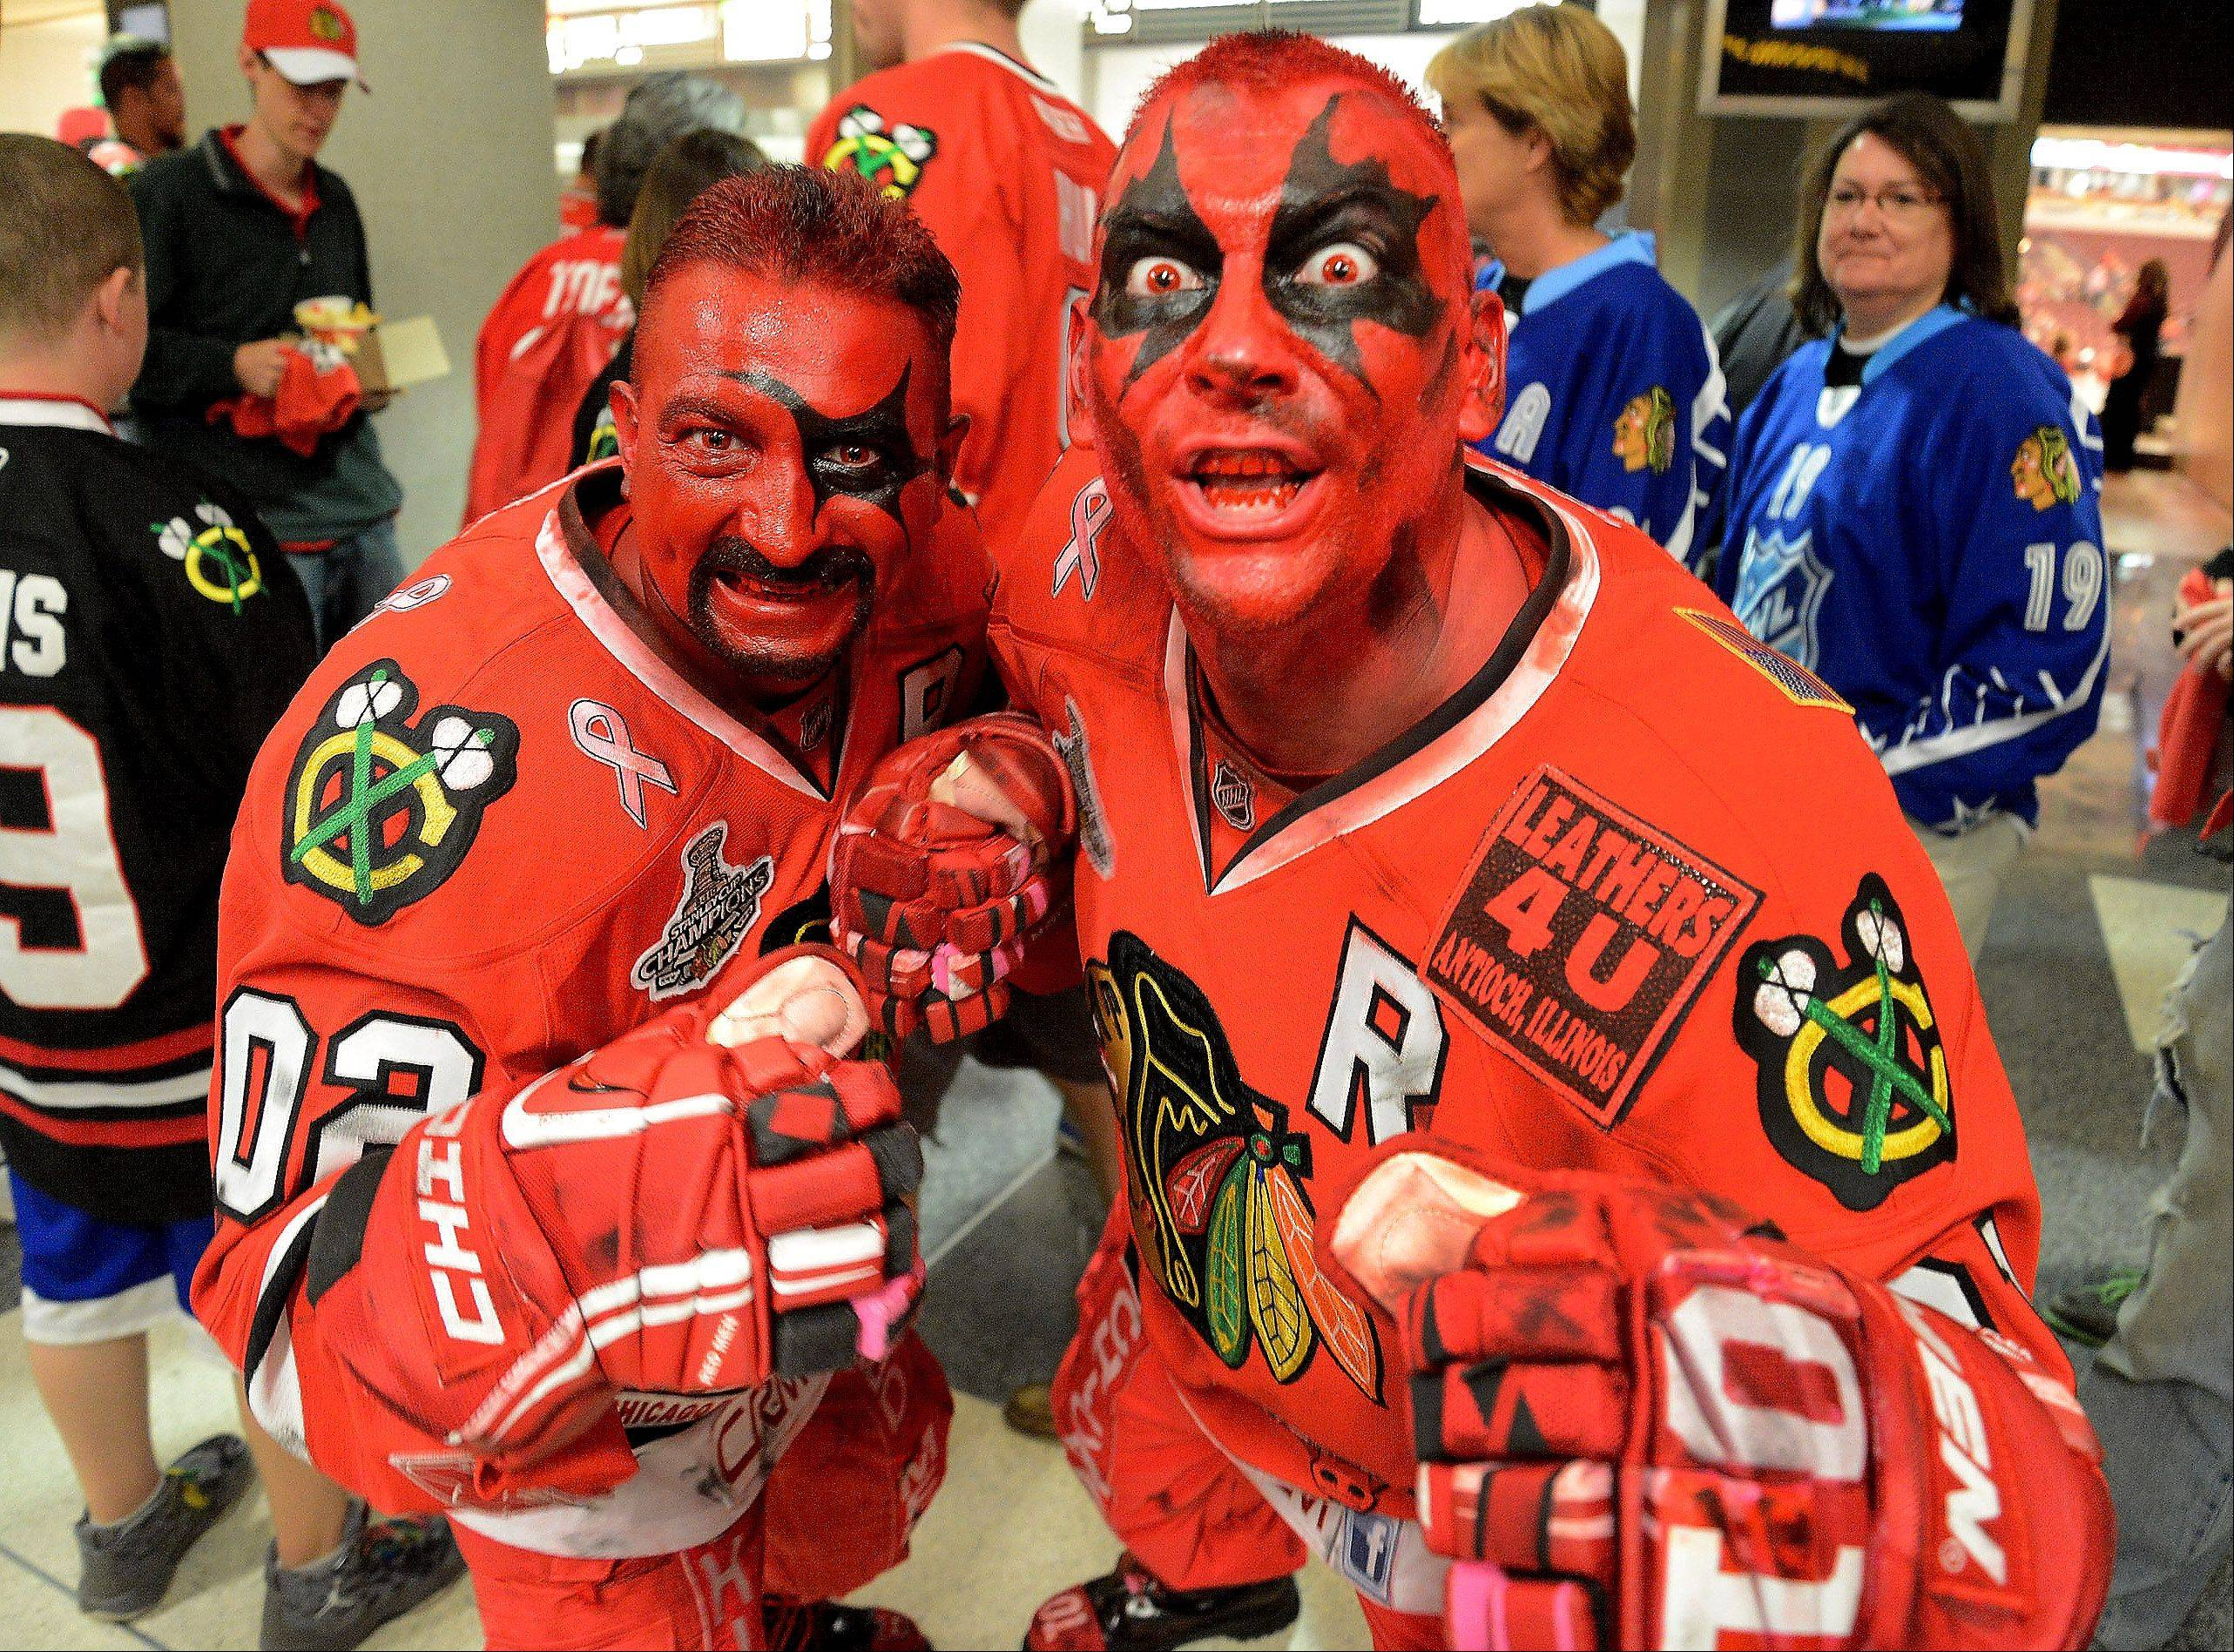 Dominic Randazzo, left, and Dan Raciak, both from Ingleside, who call themselves the Chicago Red Men, get pumped-up for game 1 of the Western Conference finals between the Chicago Blackhawks and the Los Angeles Kings.